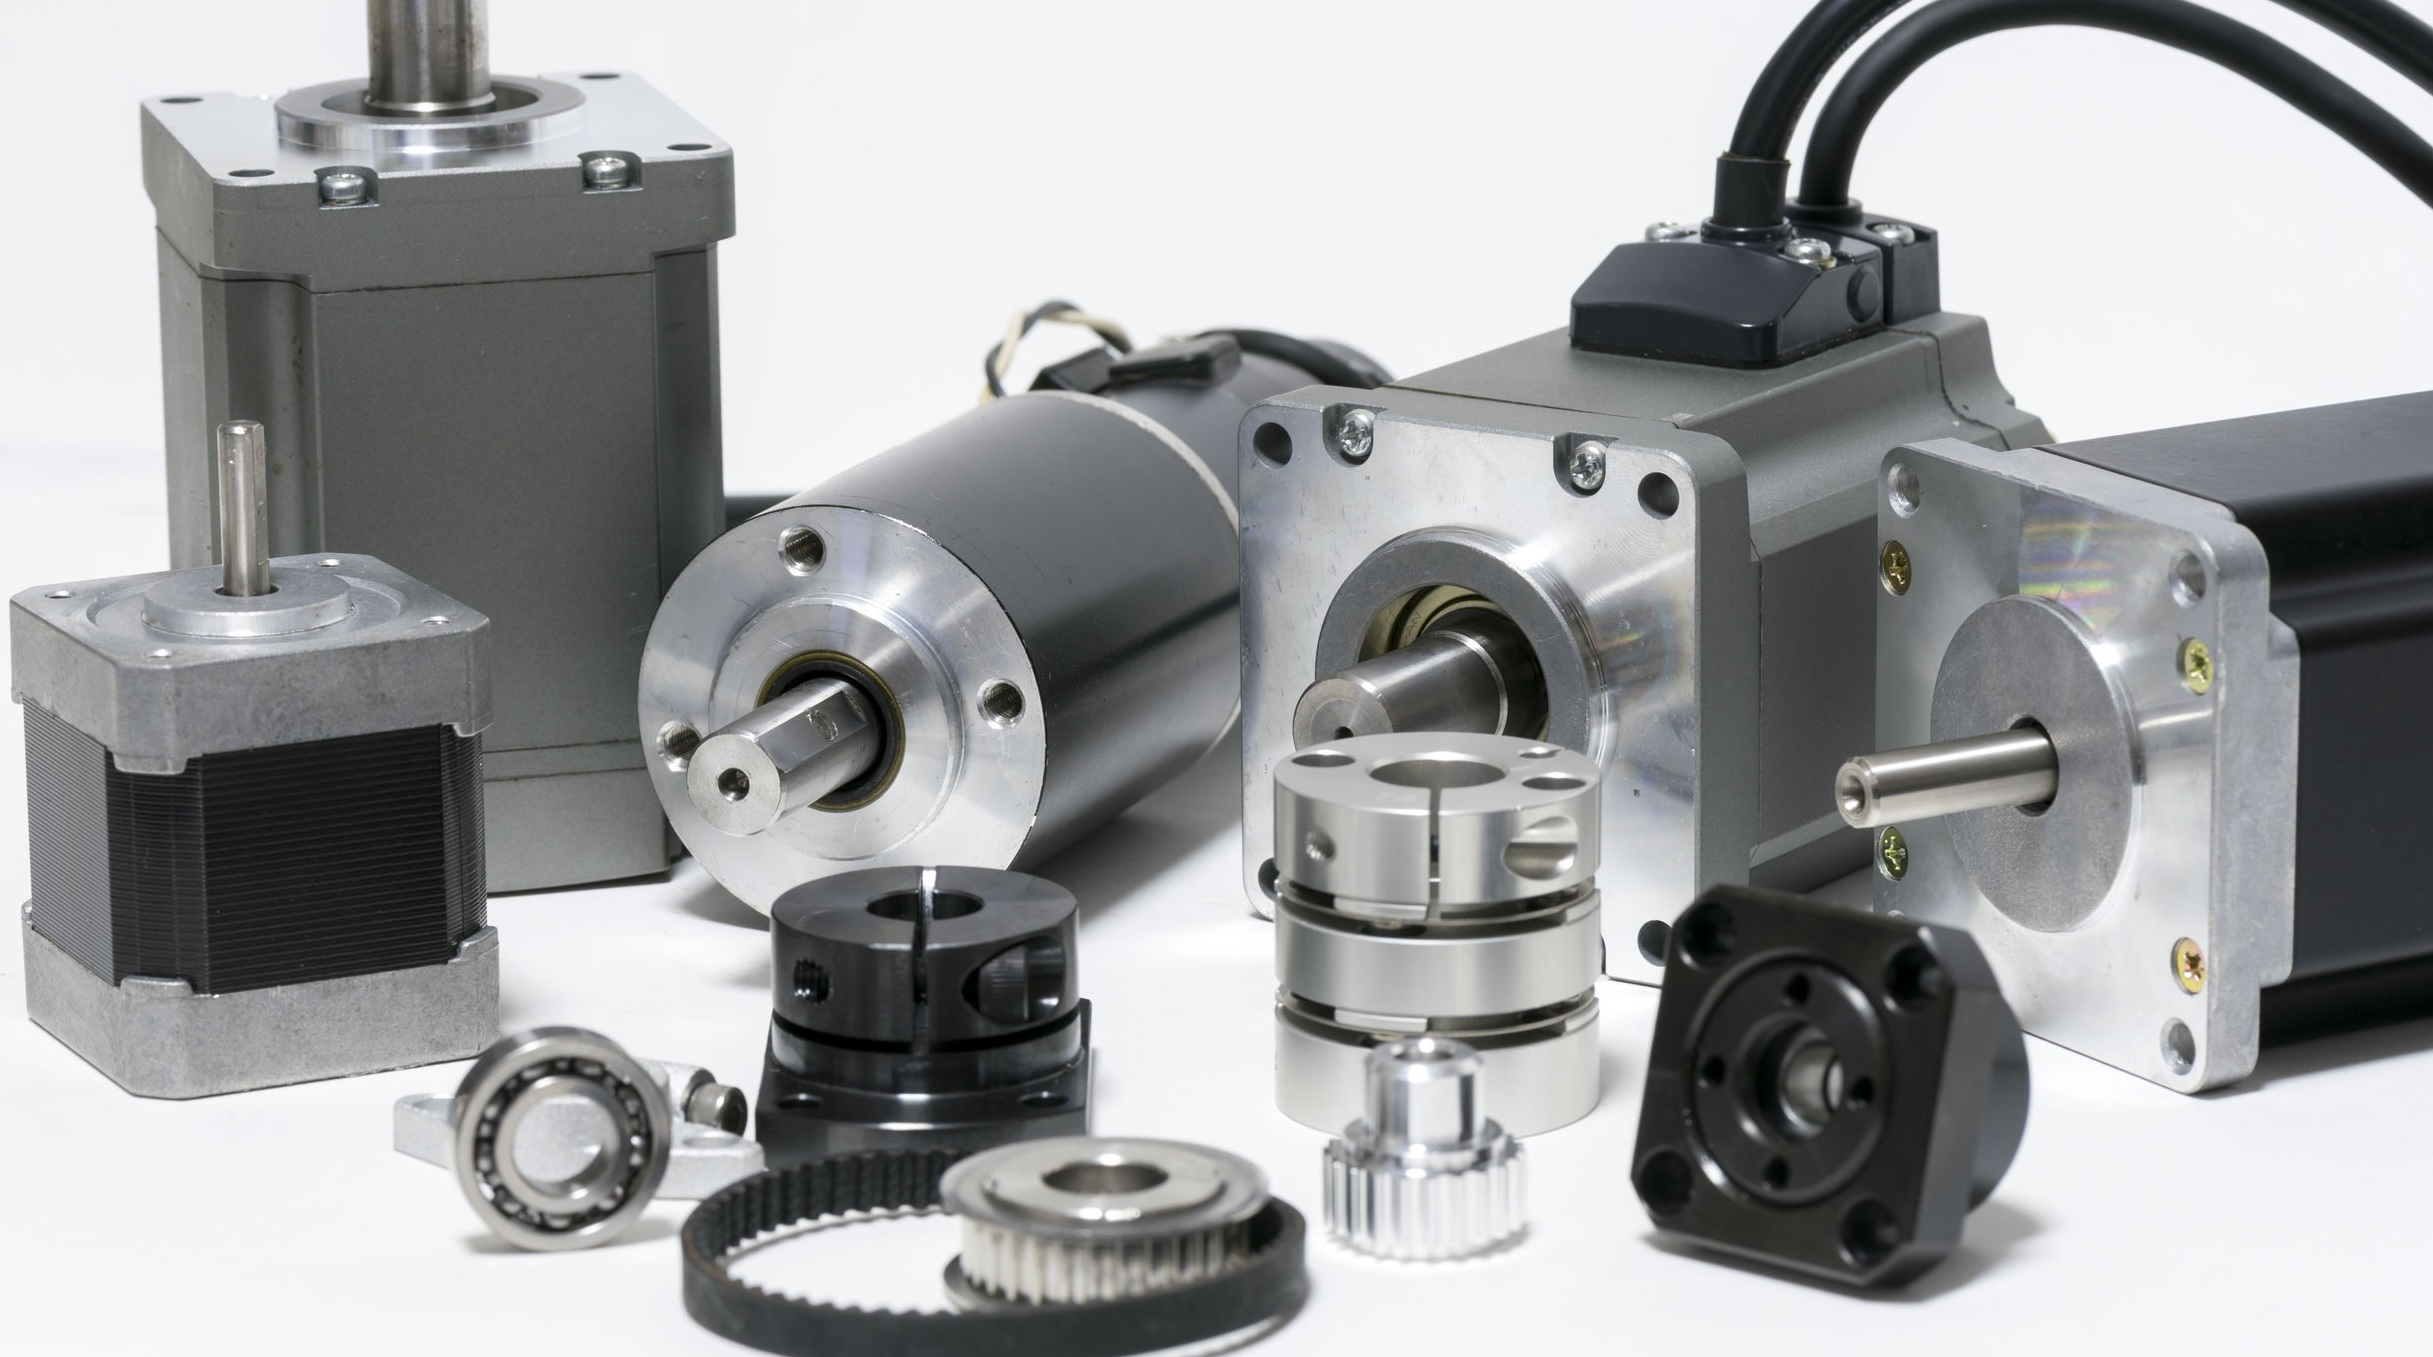 Machine Parts - We know that many machine parts are perishable and need to be replaced quickly, let Machine Tool Diagnostics be your replacement parts supplier. We work fast to source your parts and provide accurate pricing and lead times.MTD supplies genuine manufacturer parts and we have access to over 75,000 in stock FANUC parts. We can provide you with parts as small as filters, belts, and seals to replacement ballscrews, motors, pumps and more!